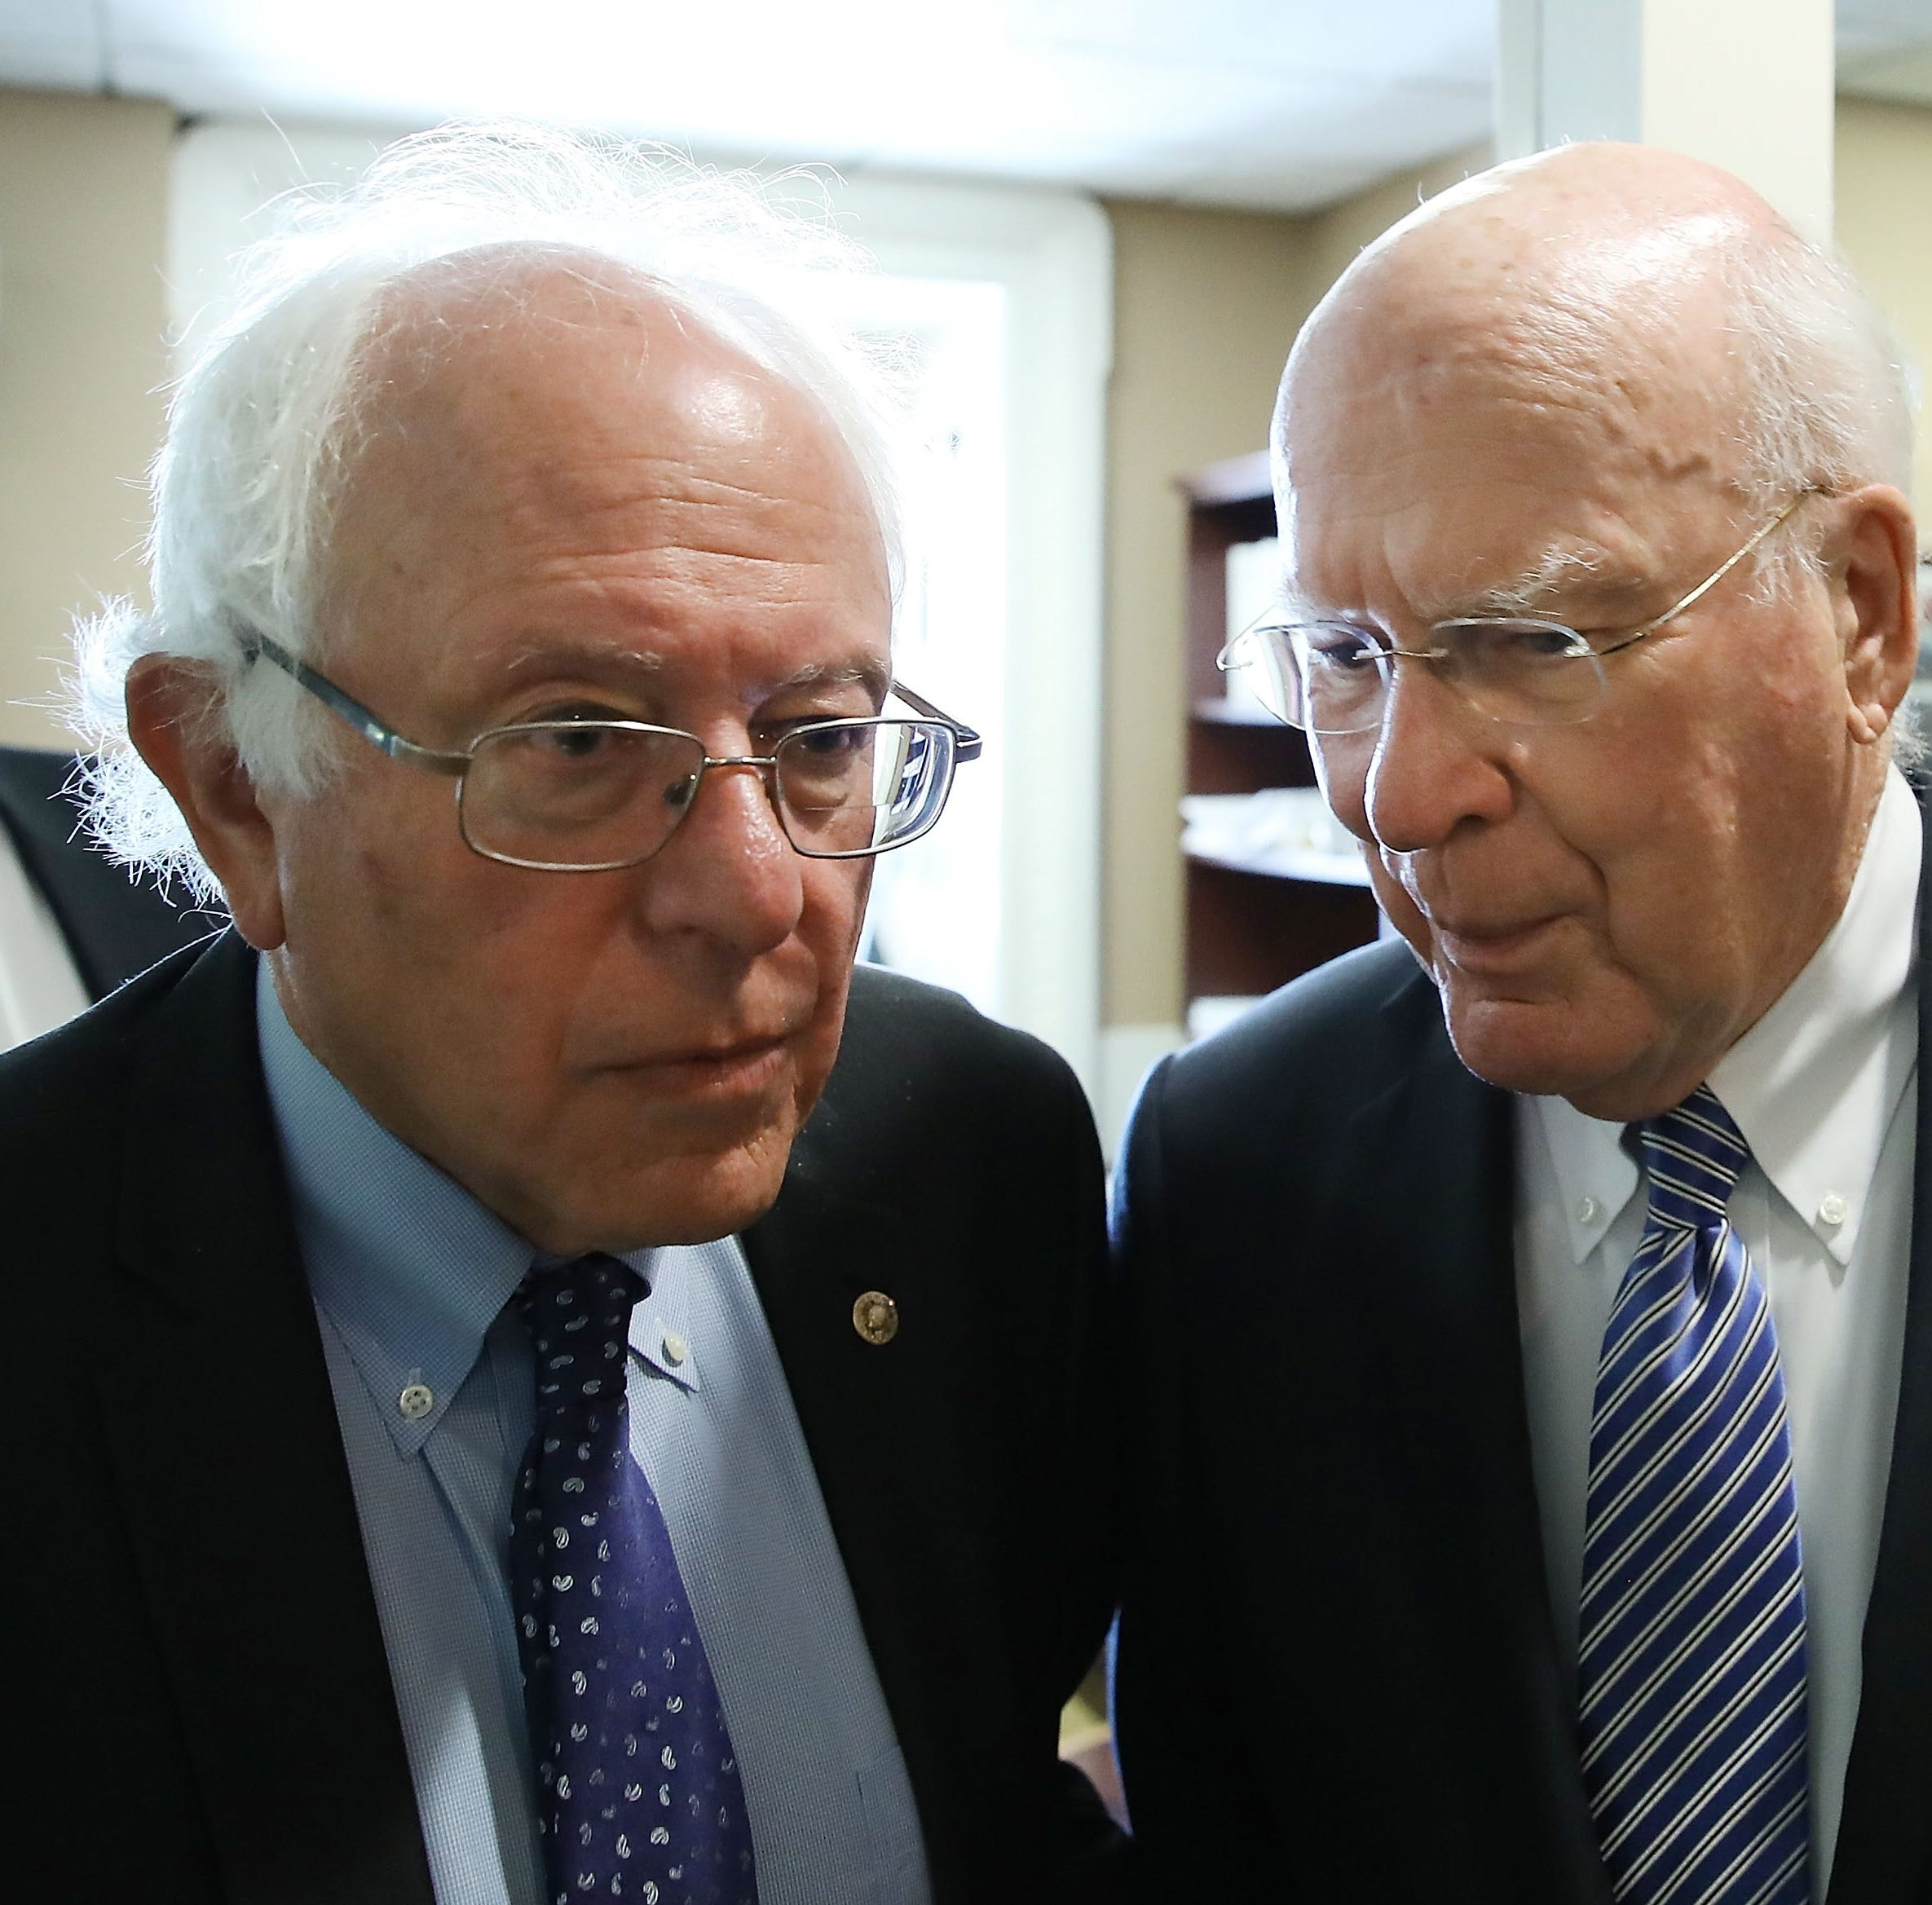 VT Insights: Where Bernie Sanders, Patrick Leahy stand in most popular senators rankings